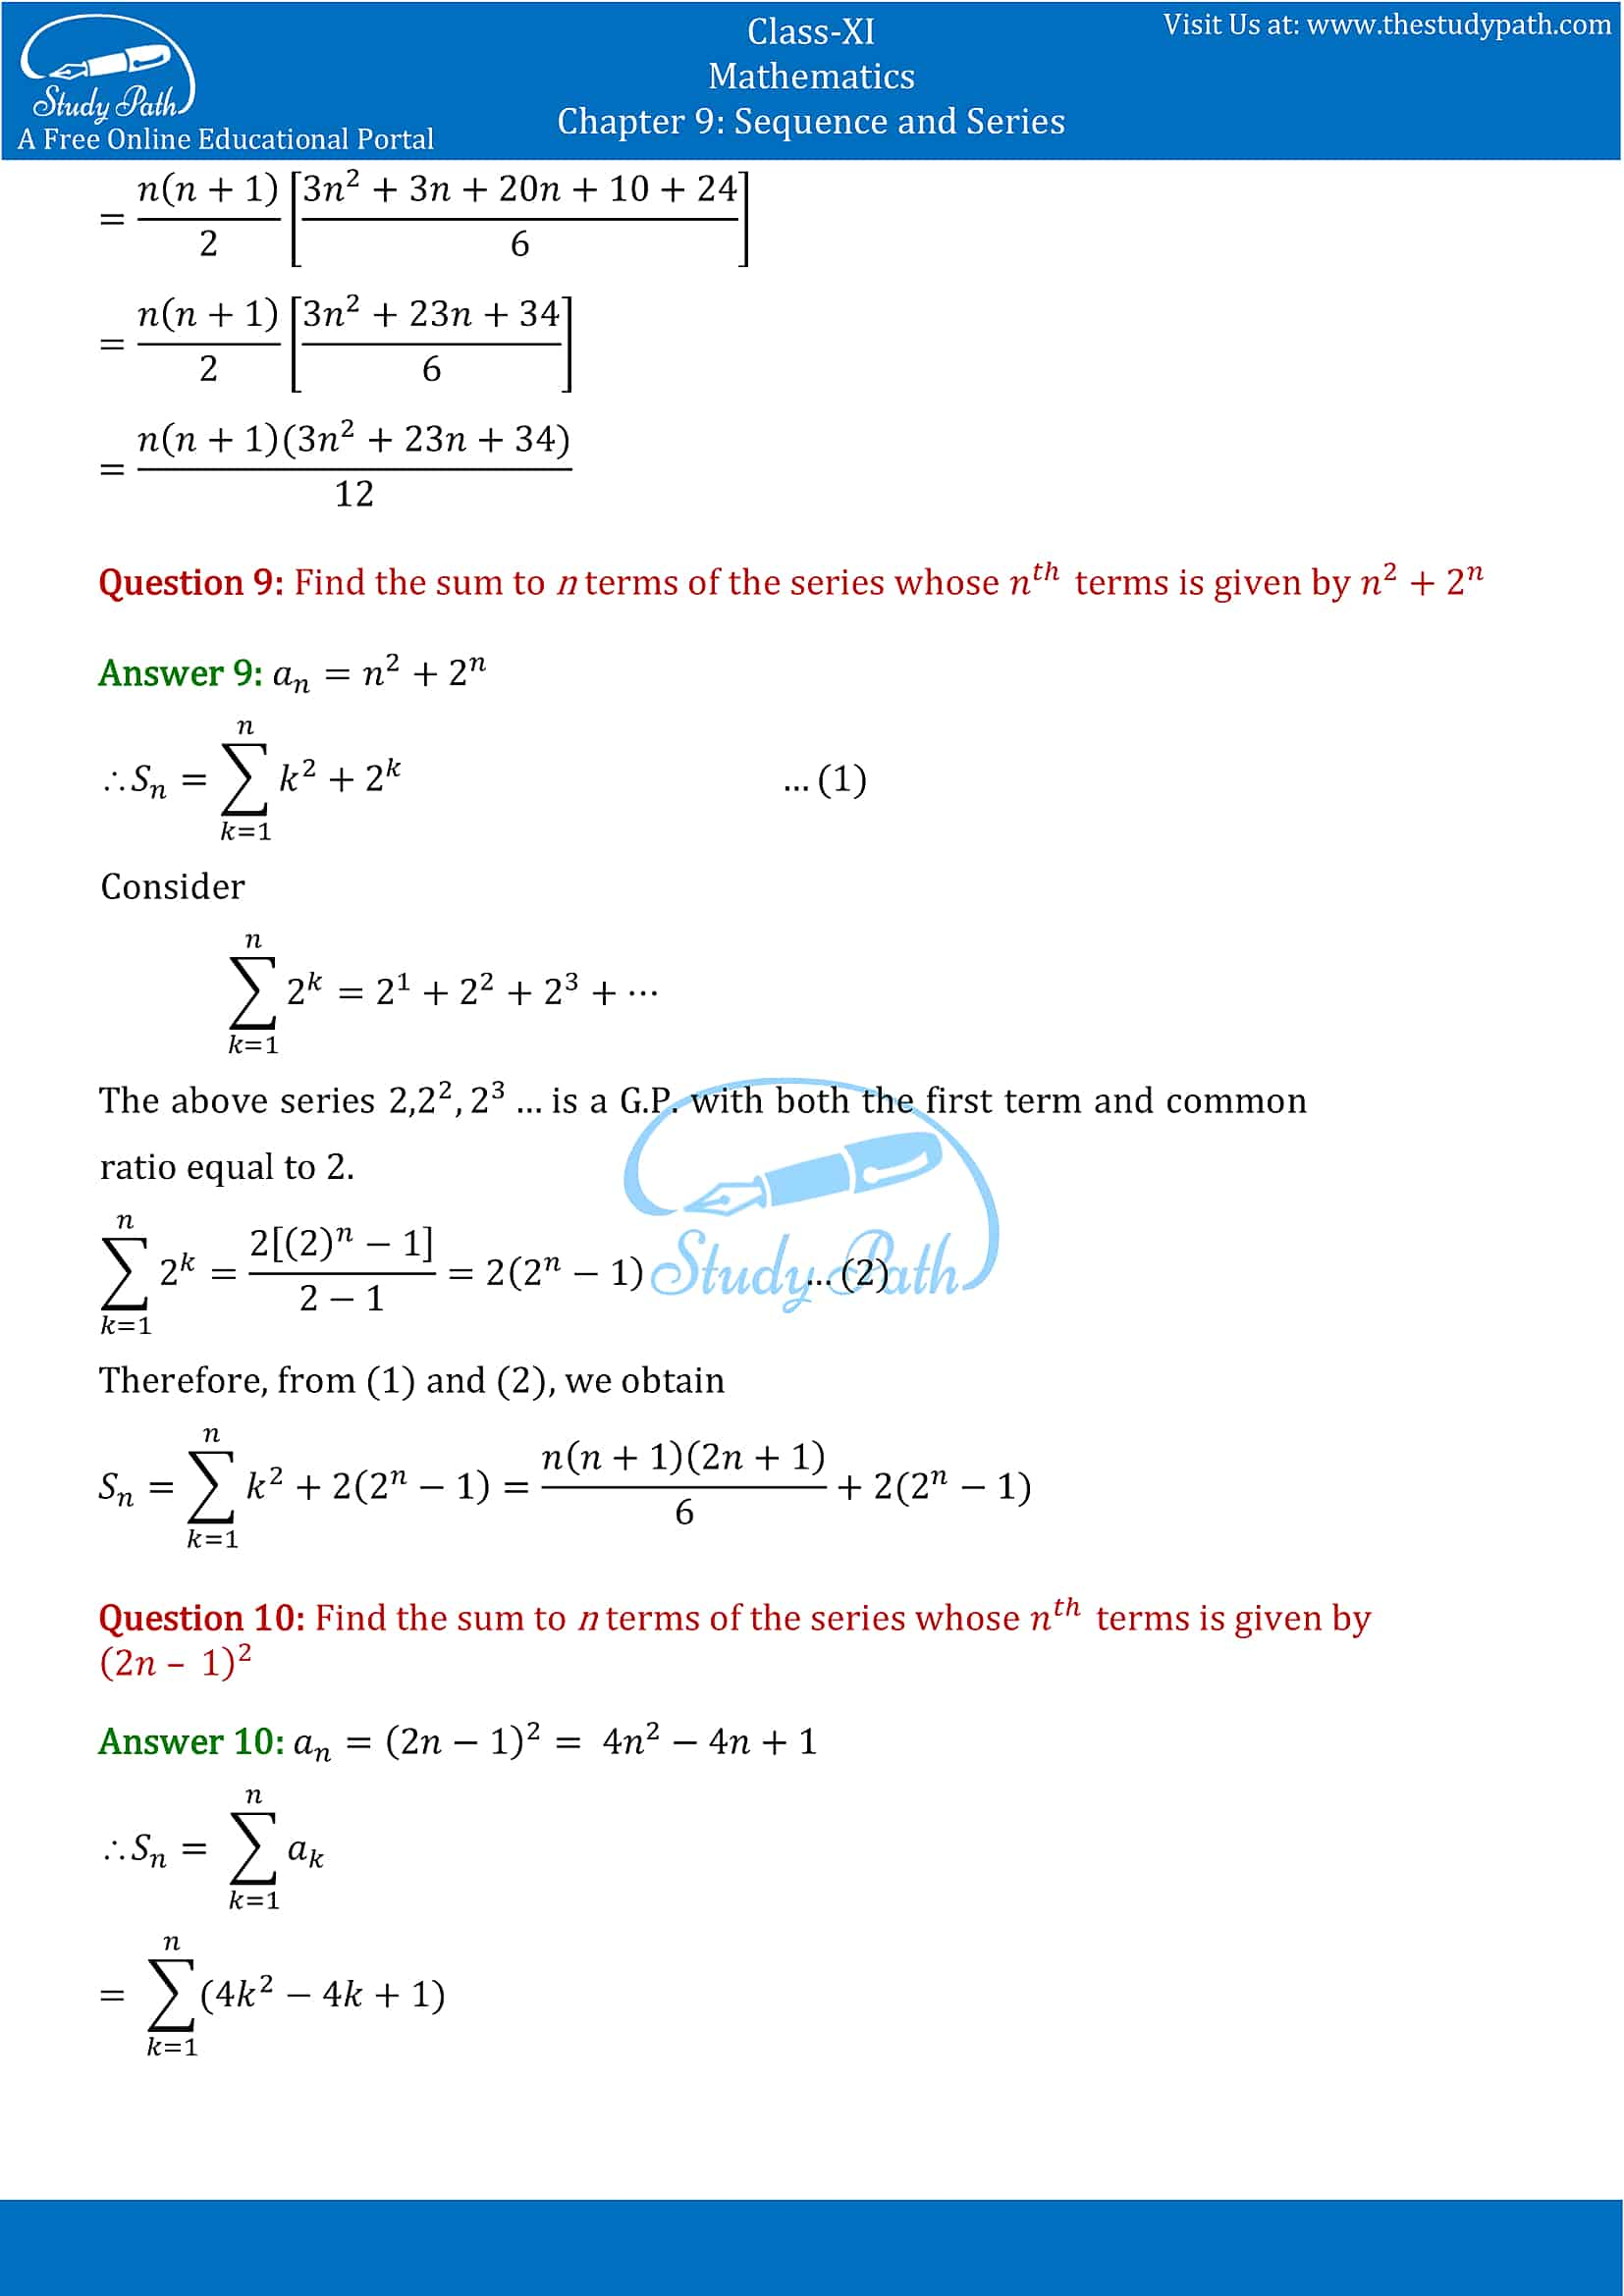 NCERT Solutions for Class 11 Maths chapter 9 Sequence and Series Exercise 9.4 Part-6